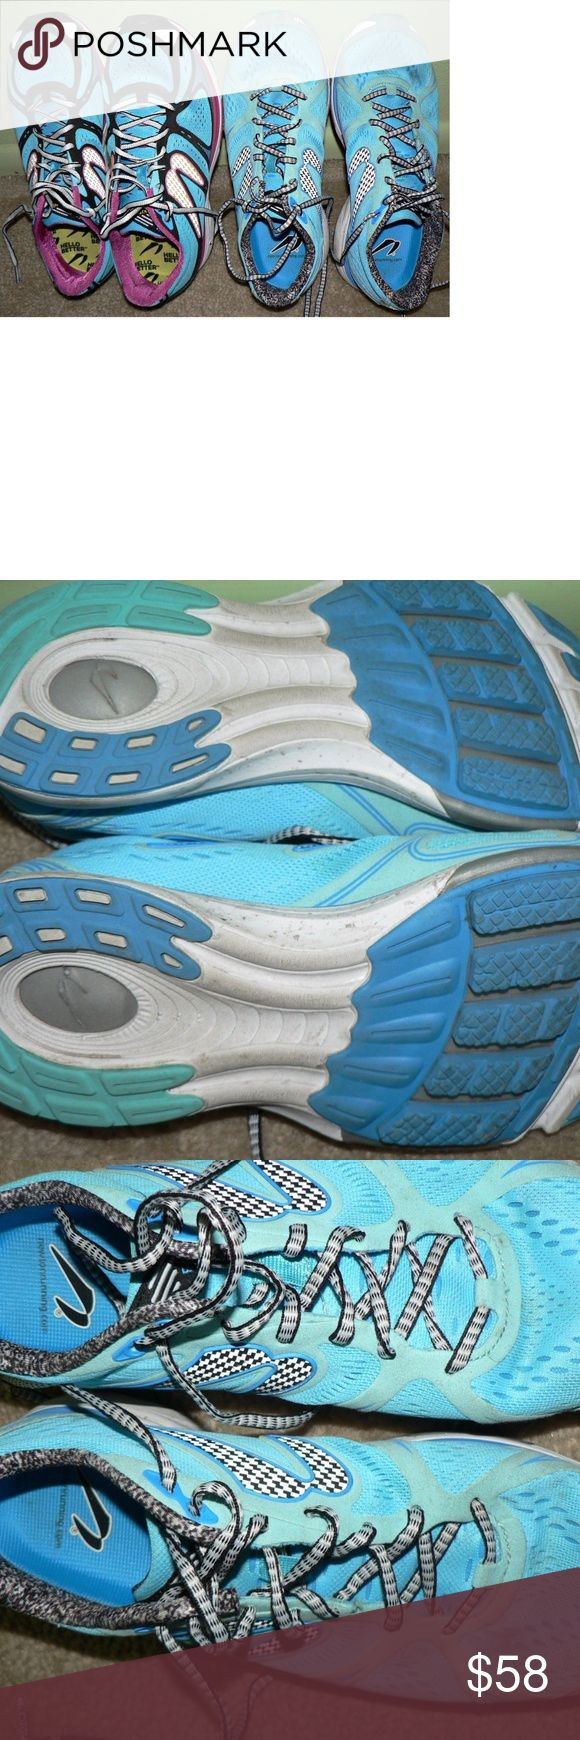 2 Pairs NEWTON Running Shoes Sz 10 Train Fast U Get 2 PAIRS: Newton Running Shoes **Fast** Womens Size 10 Newton Kismet Women Running Blue/Pink  Baby Blue are Newton Fate II  Condition: YES, gently worn. As seen. However, A LOT OF LIFE and A LOT more miles to be put down in these bad boys! NO odor, no funk, nothing falling apart. Photos of the soles. Nothing ruined and no serious stain or dirt. Now on the Fate II's the lace is tied in another hole as seen. Newton Shoes Sneakers